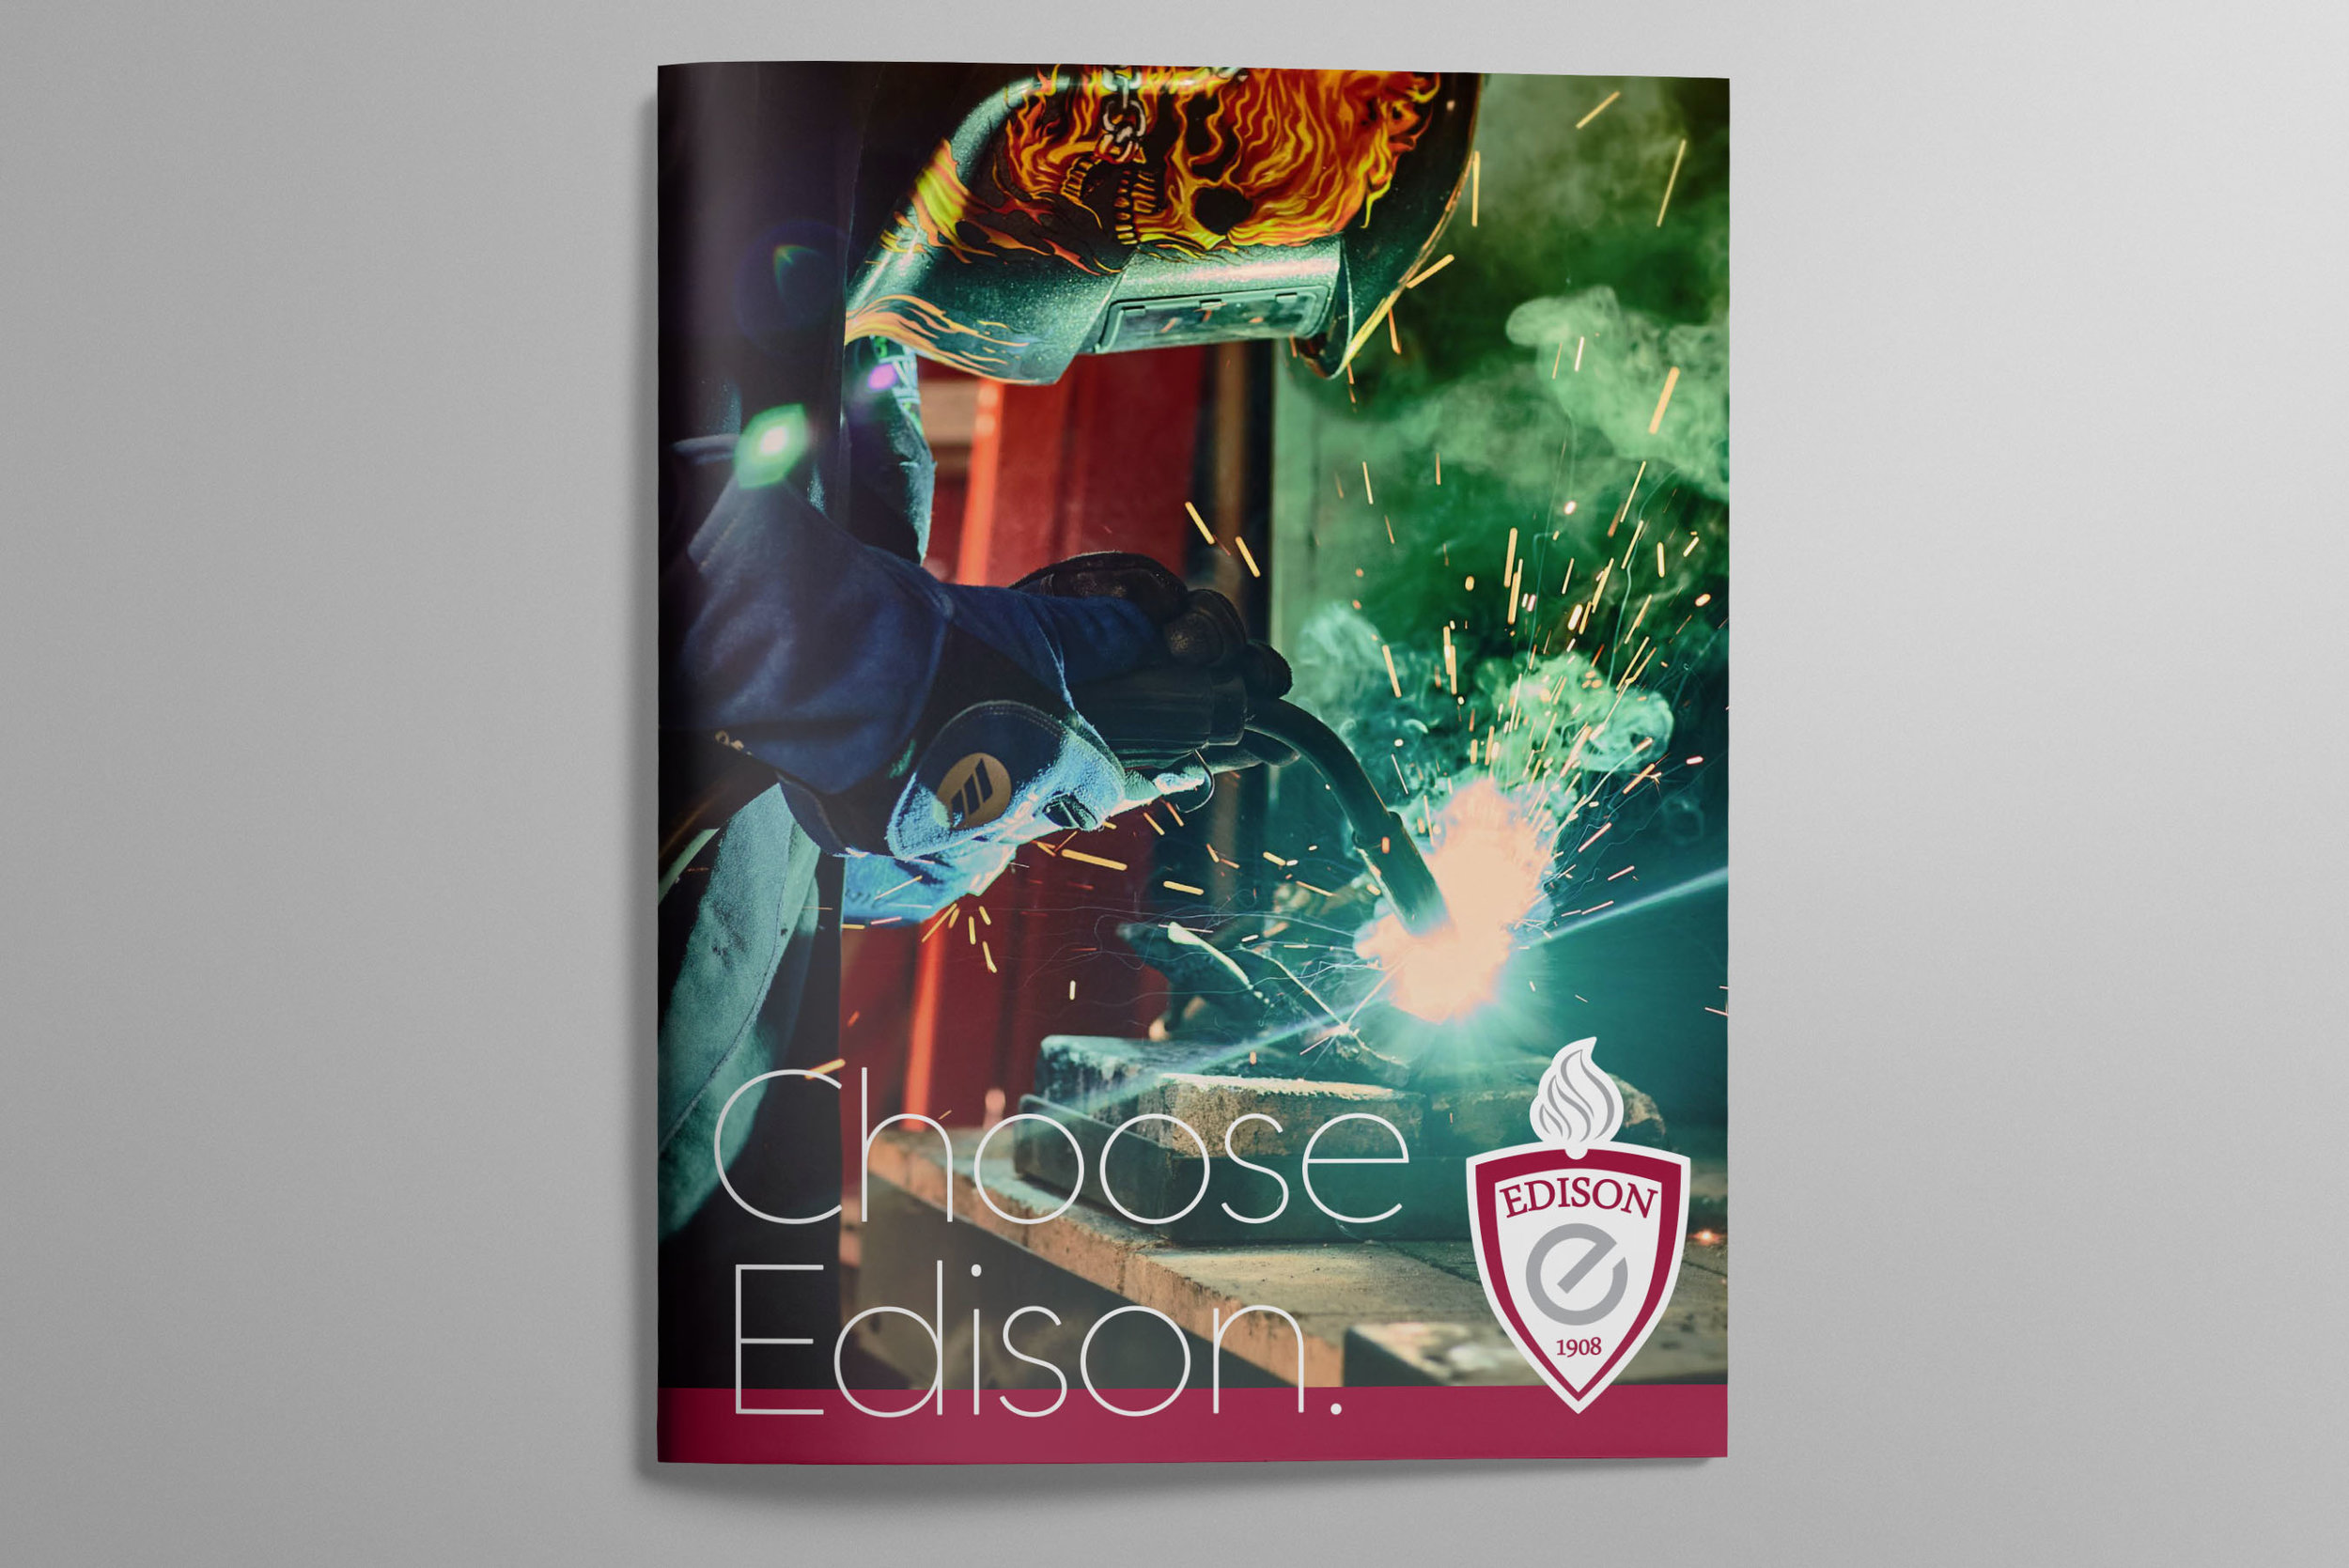 Edison Viewbook cover.jpg